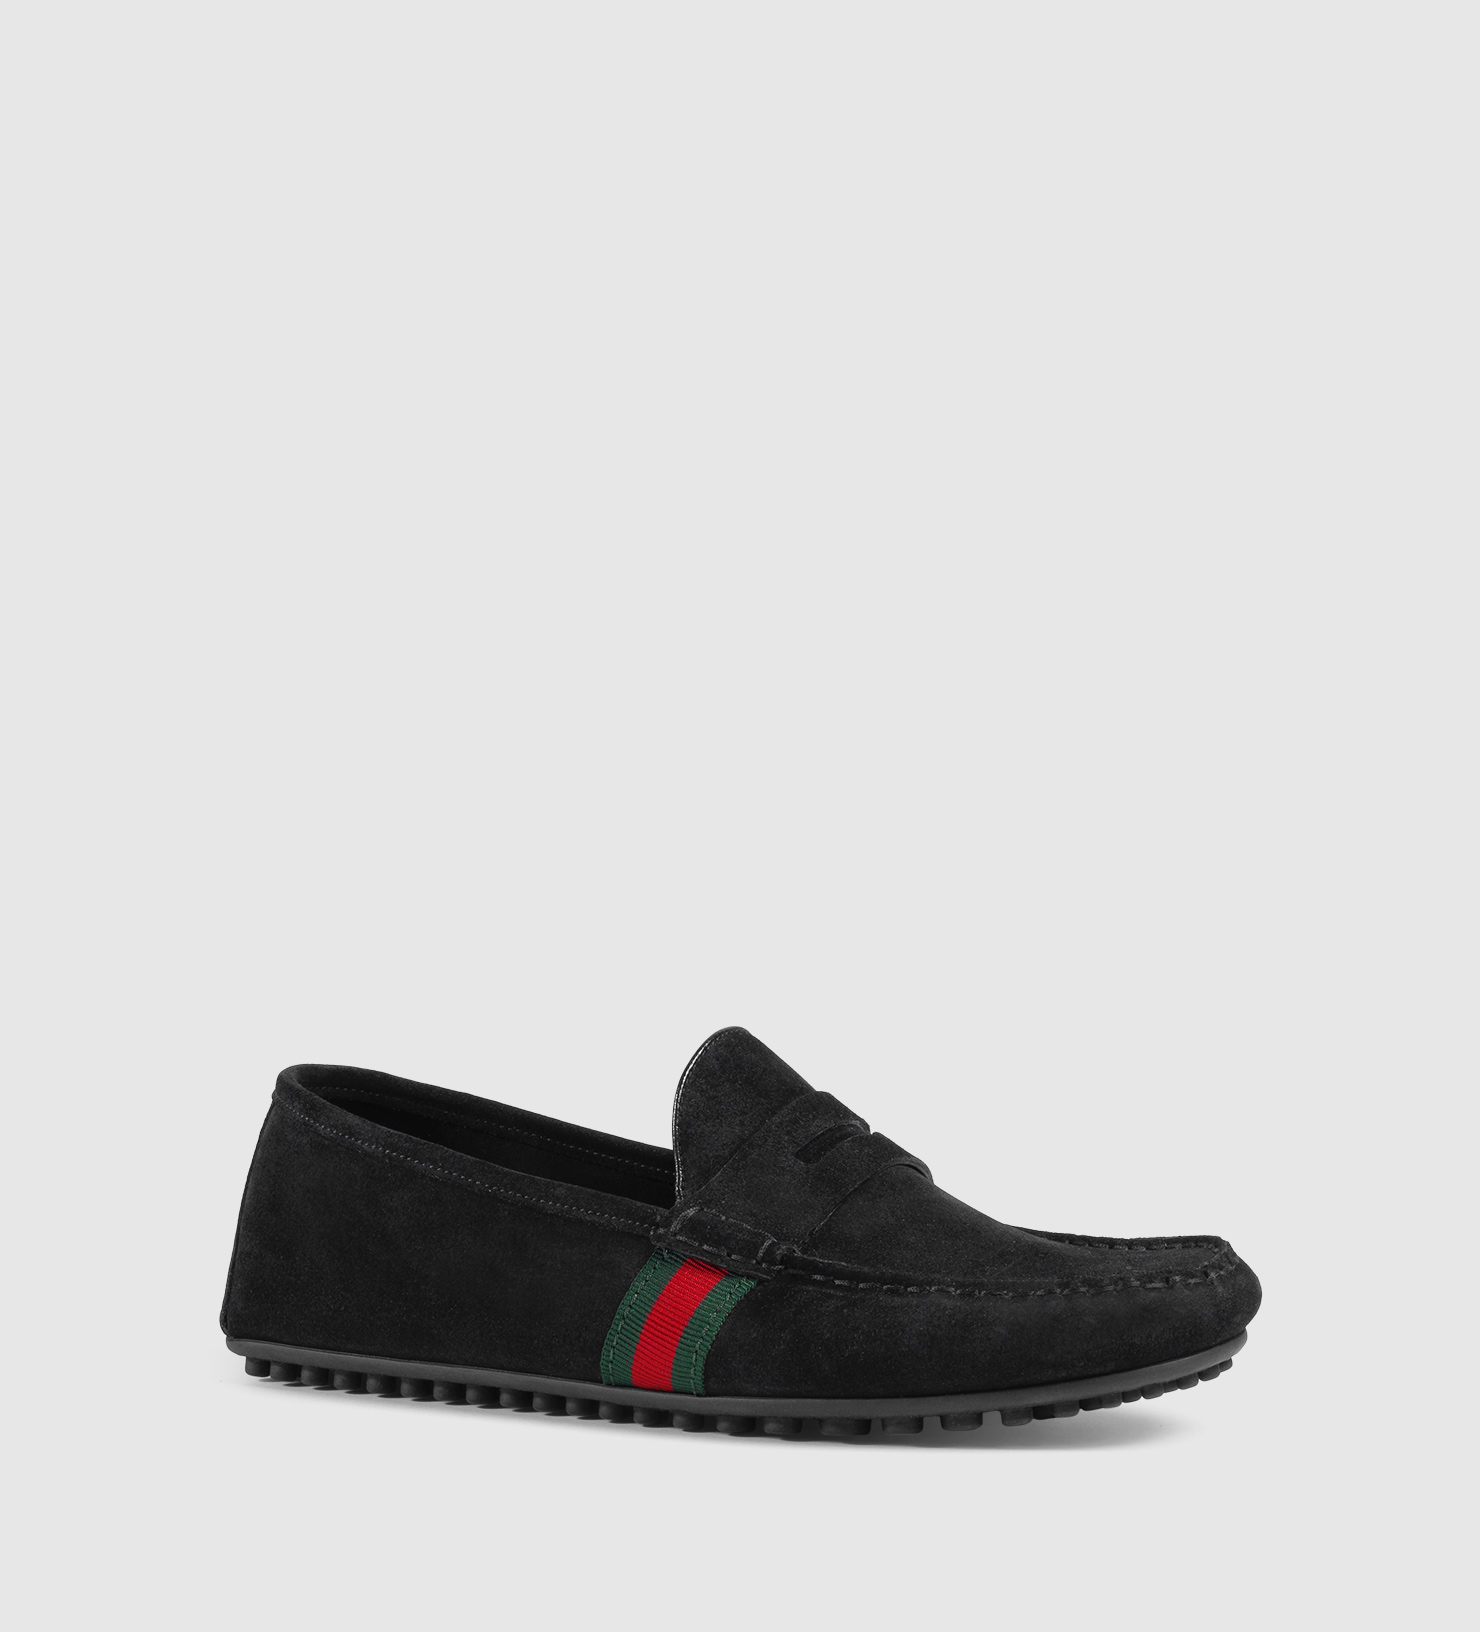 Gucci Suede Driver With Web in Black